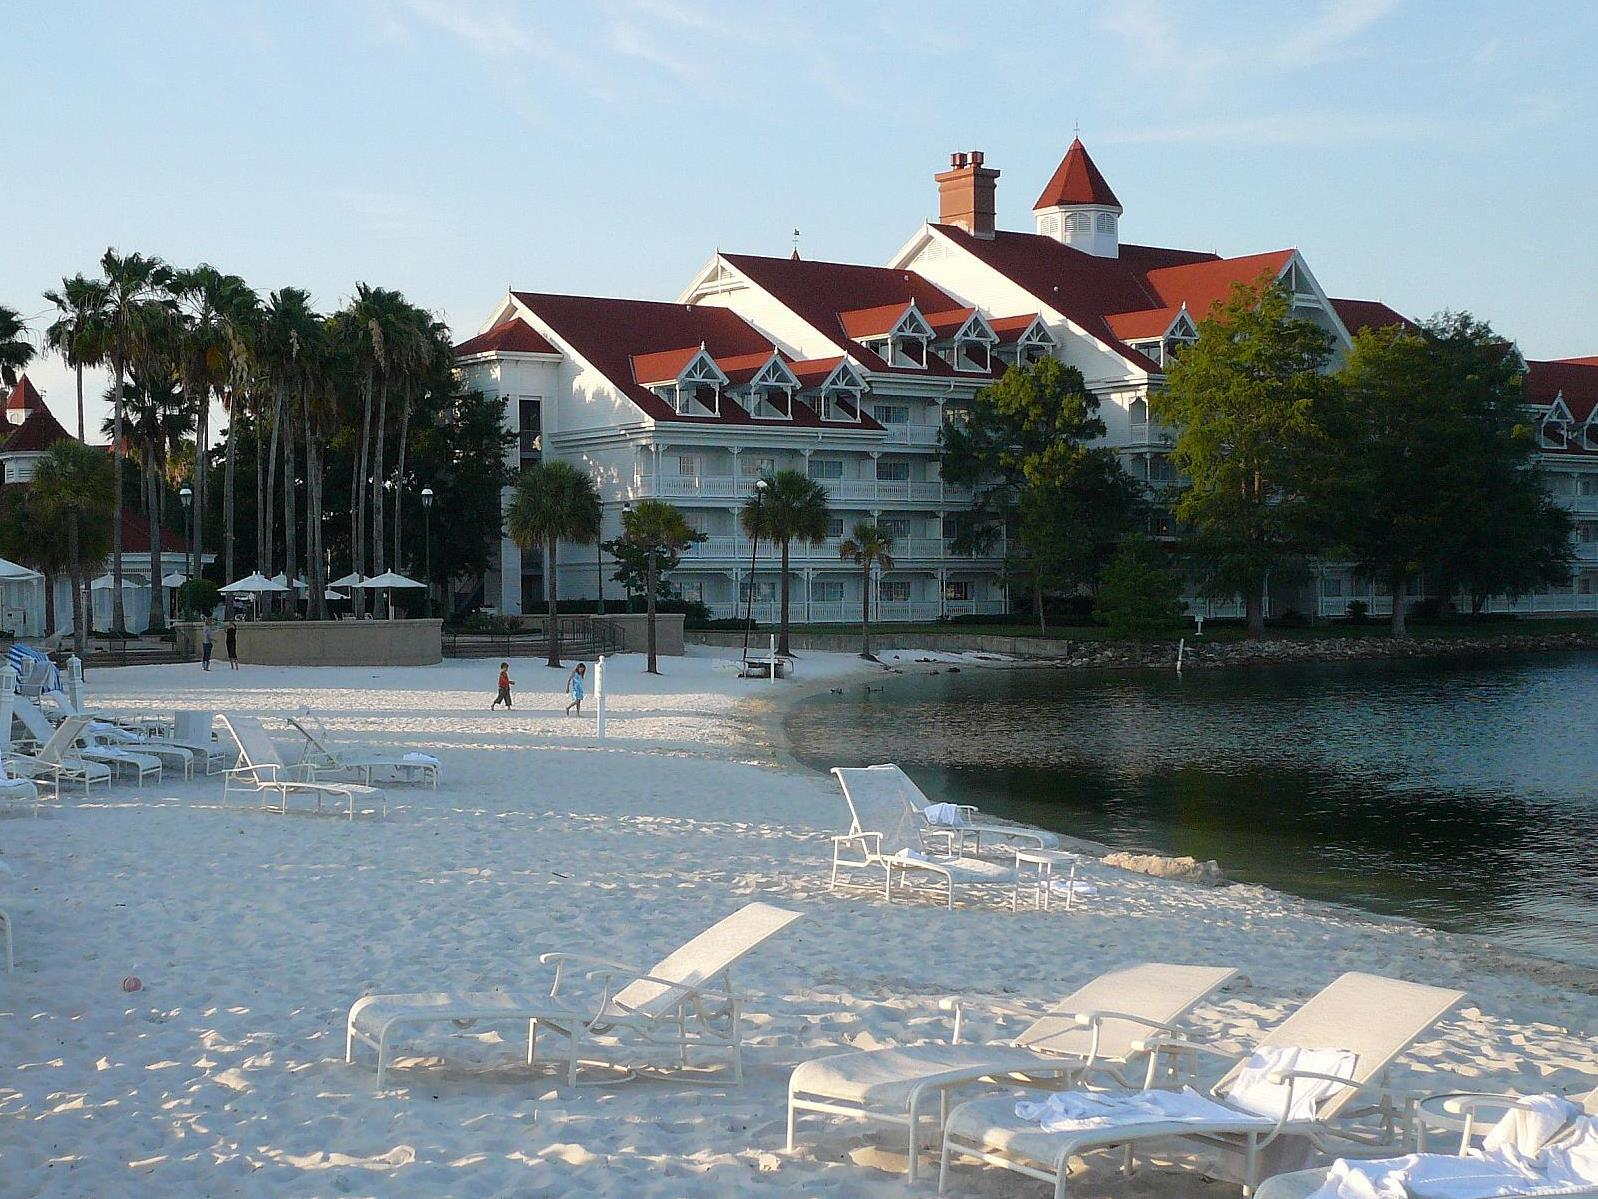 Alligator Grabs 2 Year Old Near Disney S Grand Floridian Resort